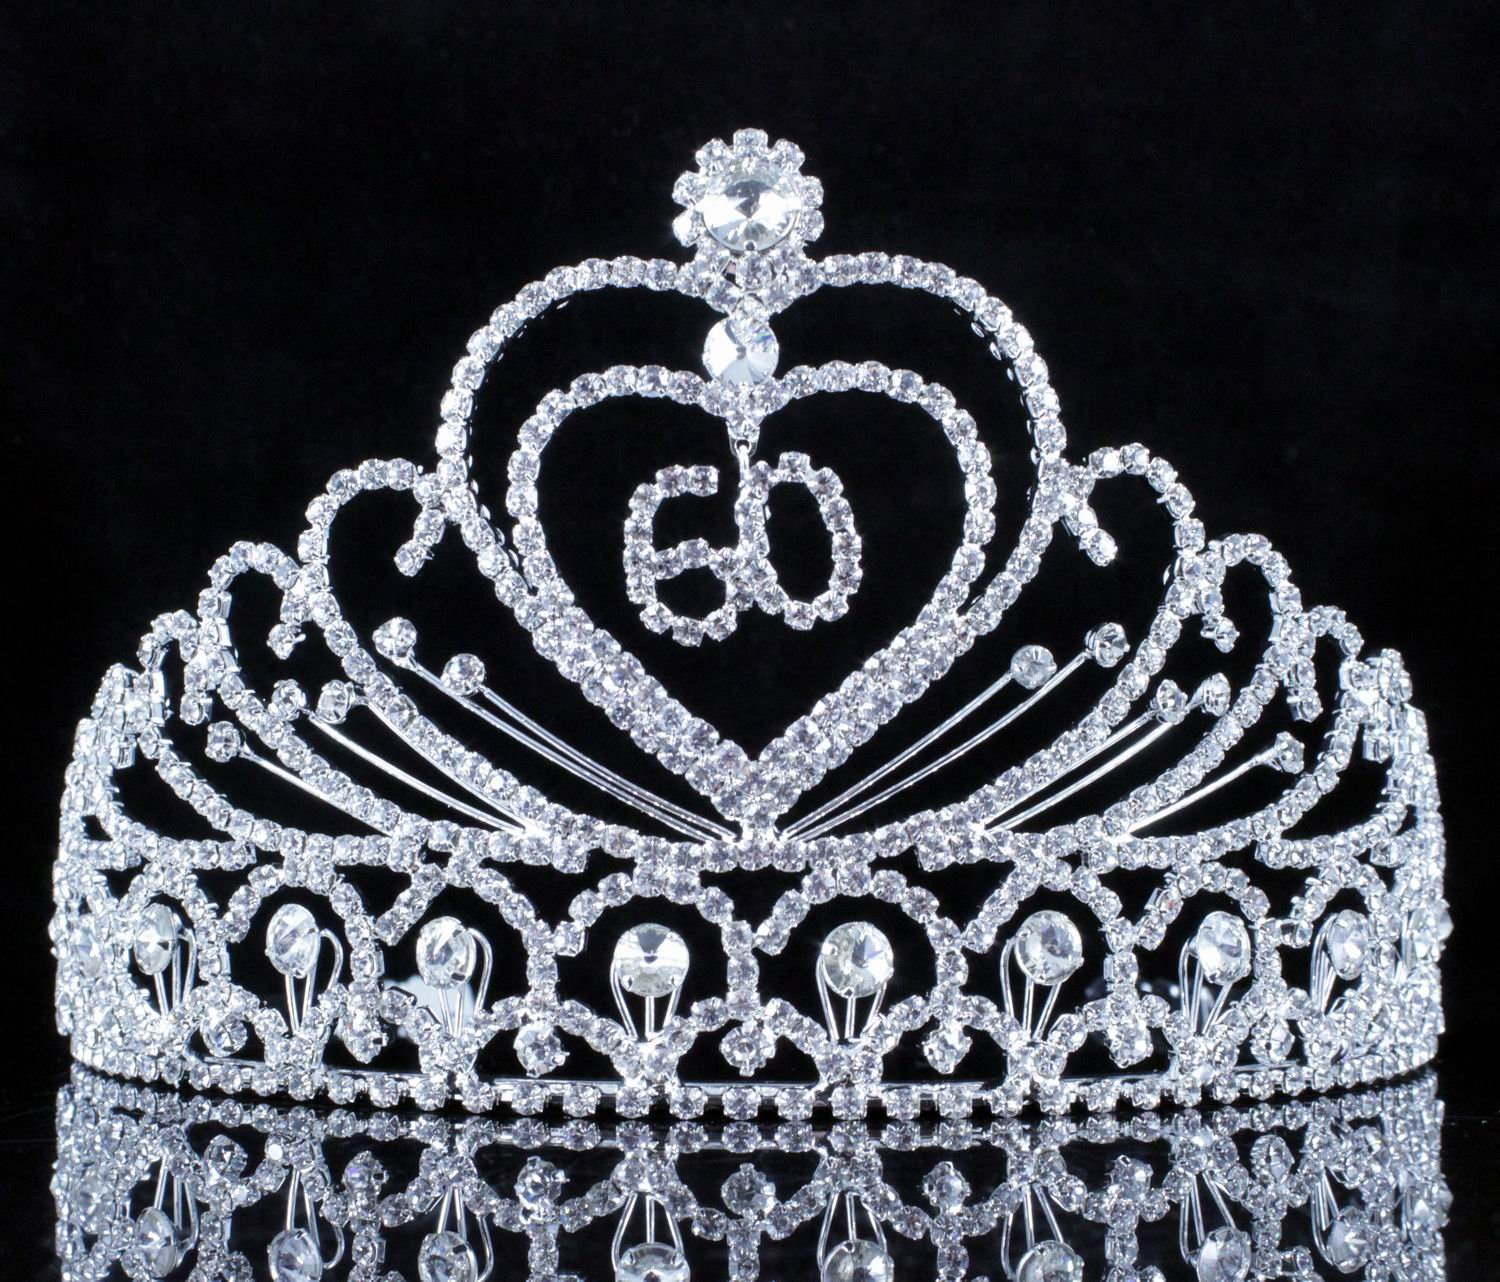 Number 60 Sixty Years Old 60th Birthday Party Clear White Austrian Crystal Rhinestone Tiara Crown Hair Combs Headpiece Queen Princess T807 Silver